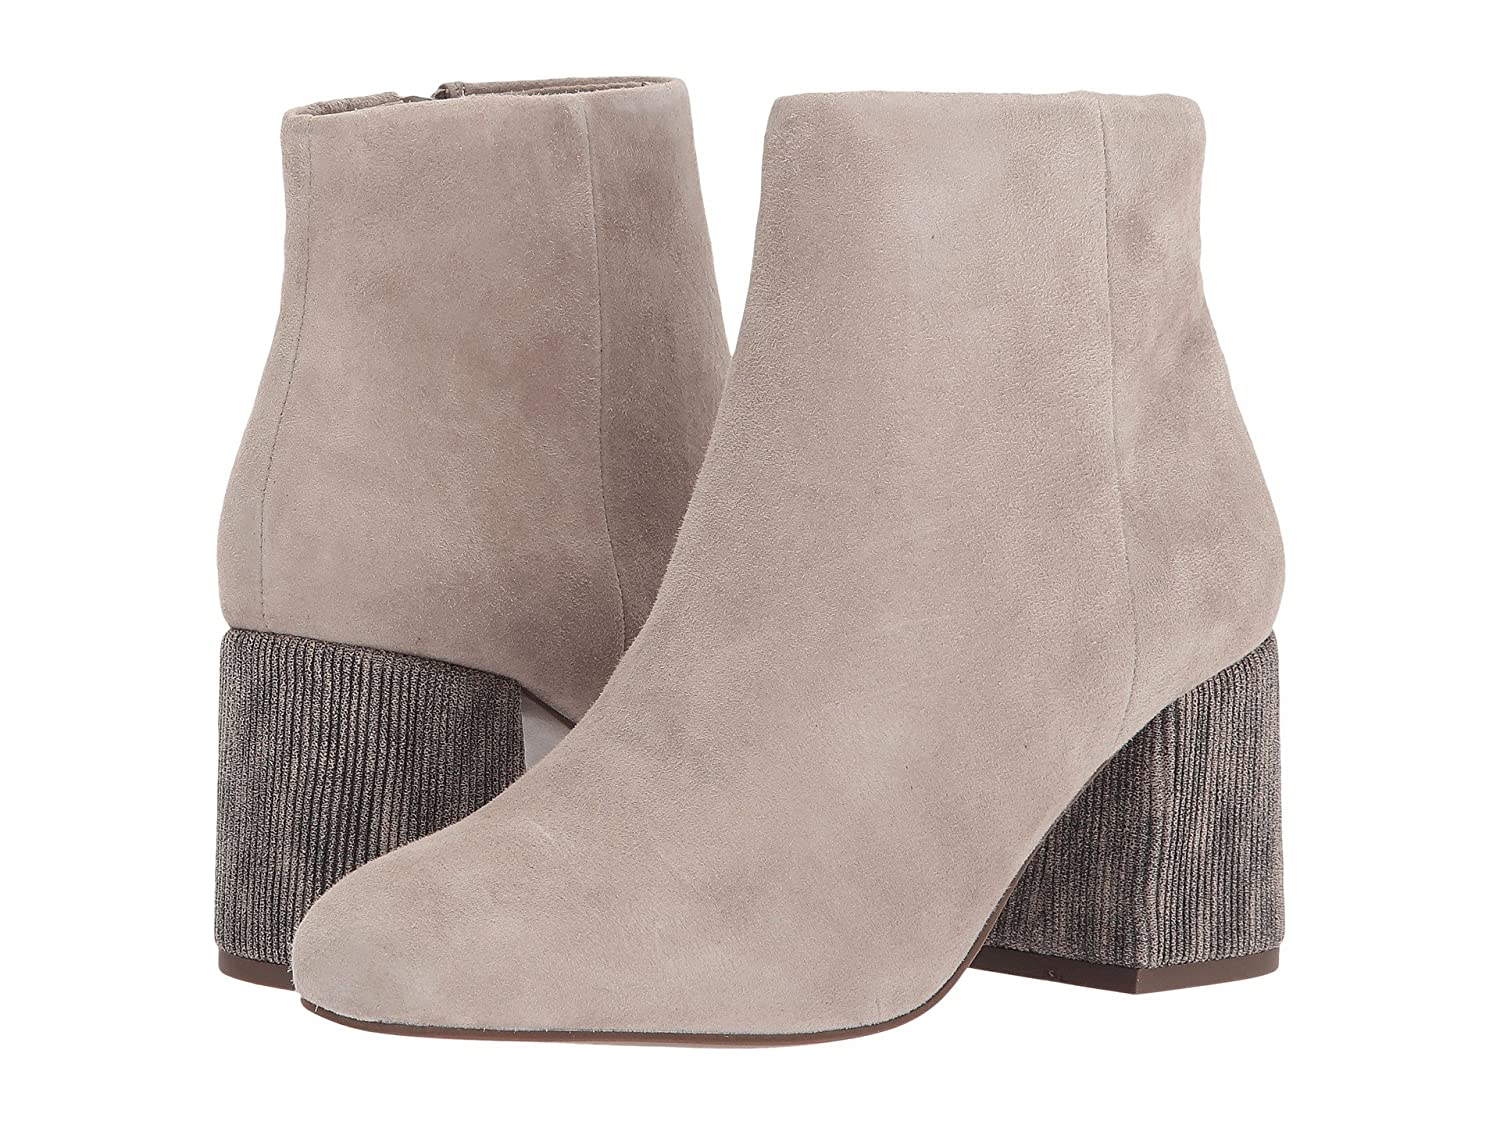 Seychelles Women's Audition Ankle Boot B06XDKXGV7 7.5 B(M) US|Taupe Suede